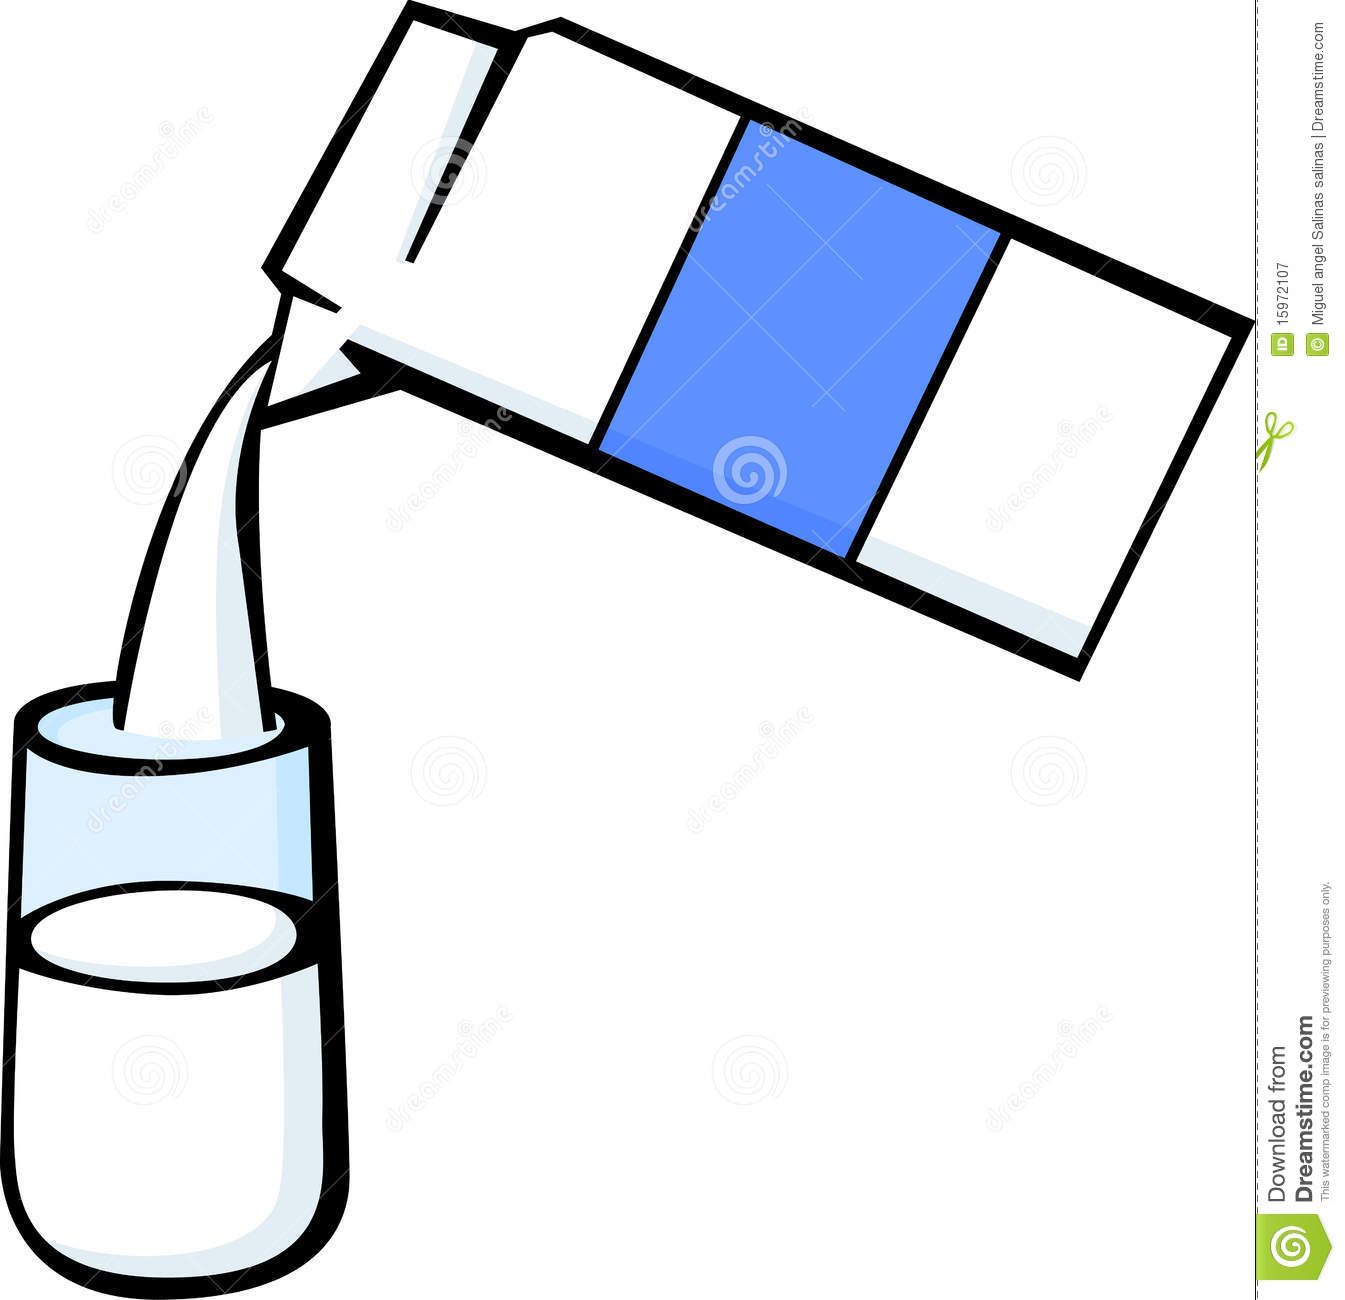 clipart of a glass of milk - photo #25